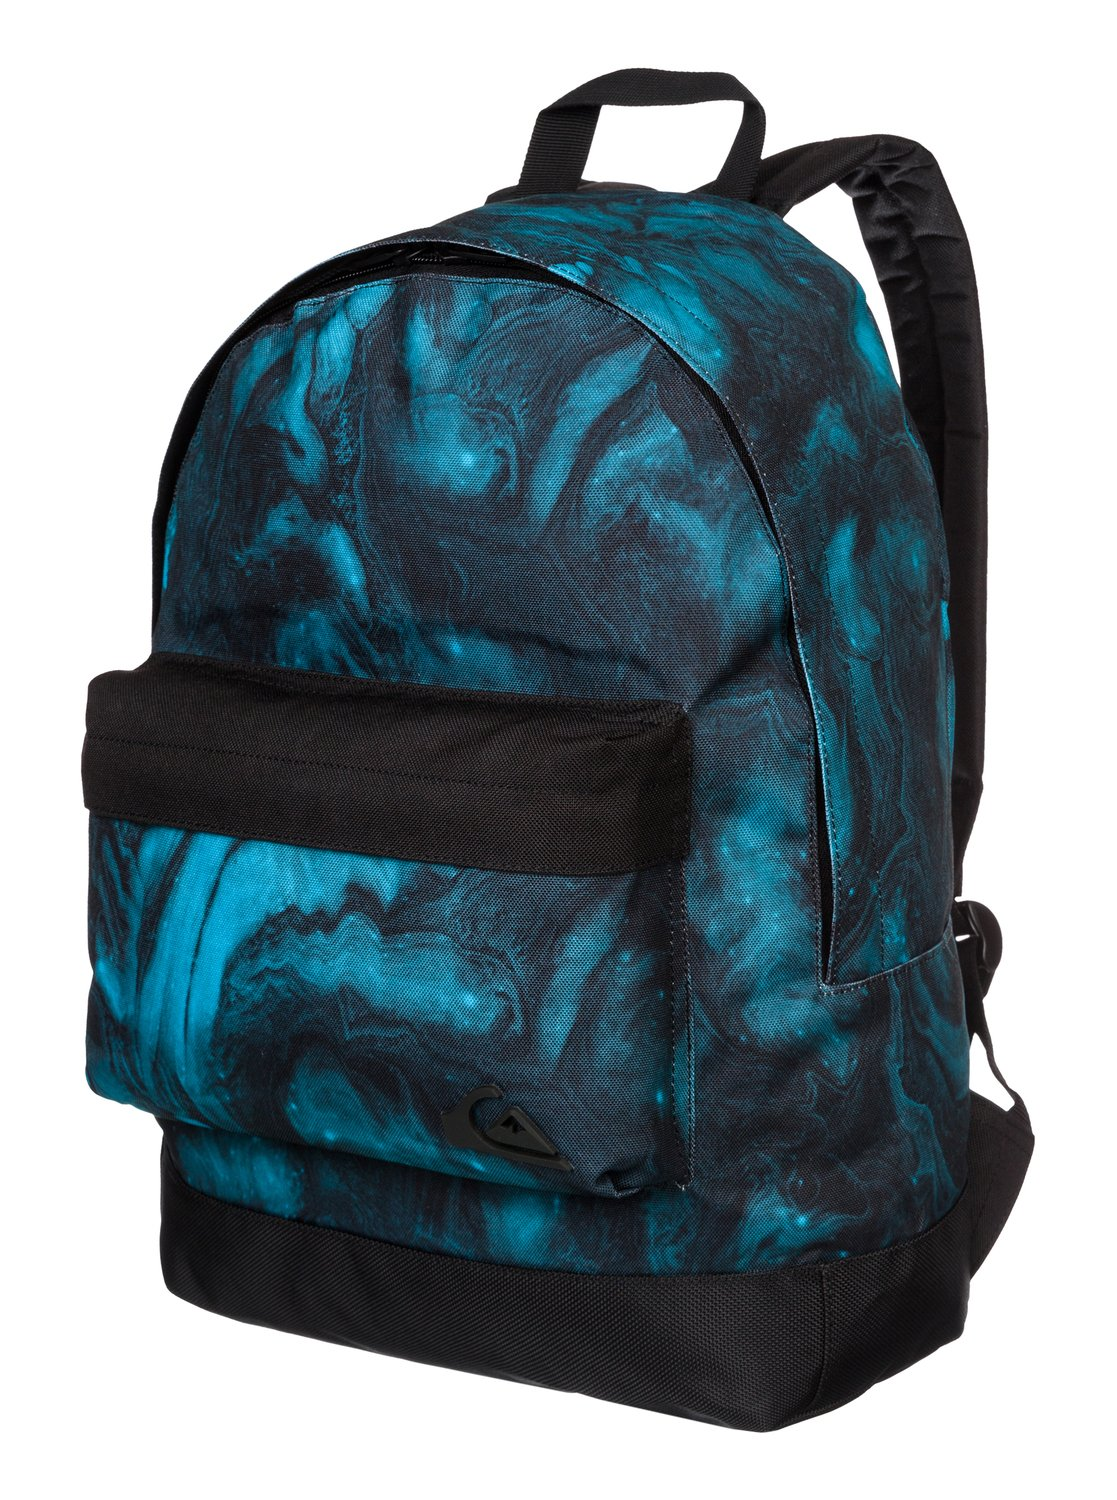 Quiksilver Sac à dos Everyday Poster zHMIG3LpS